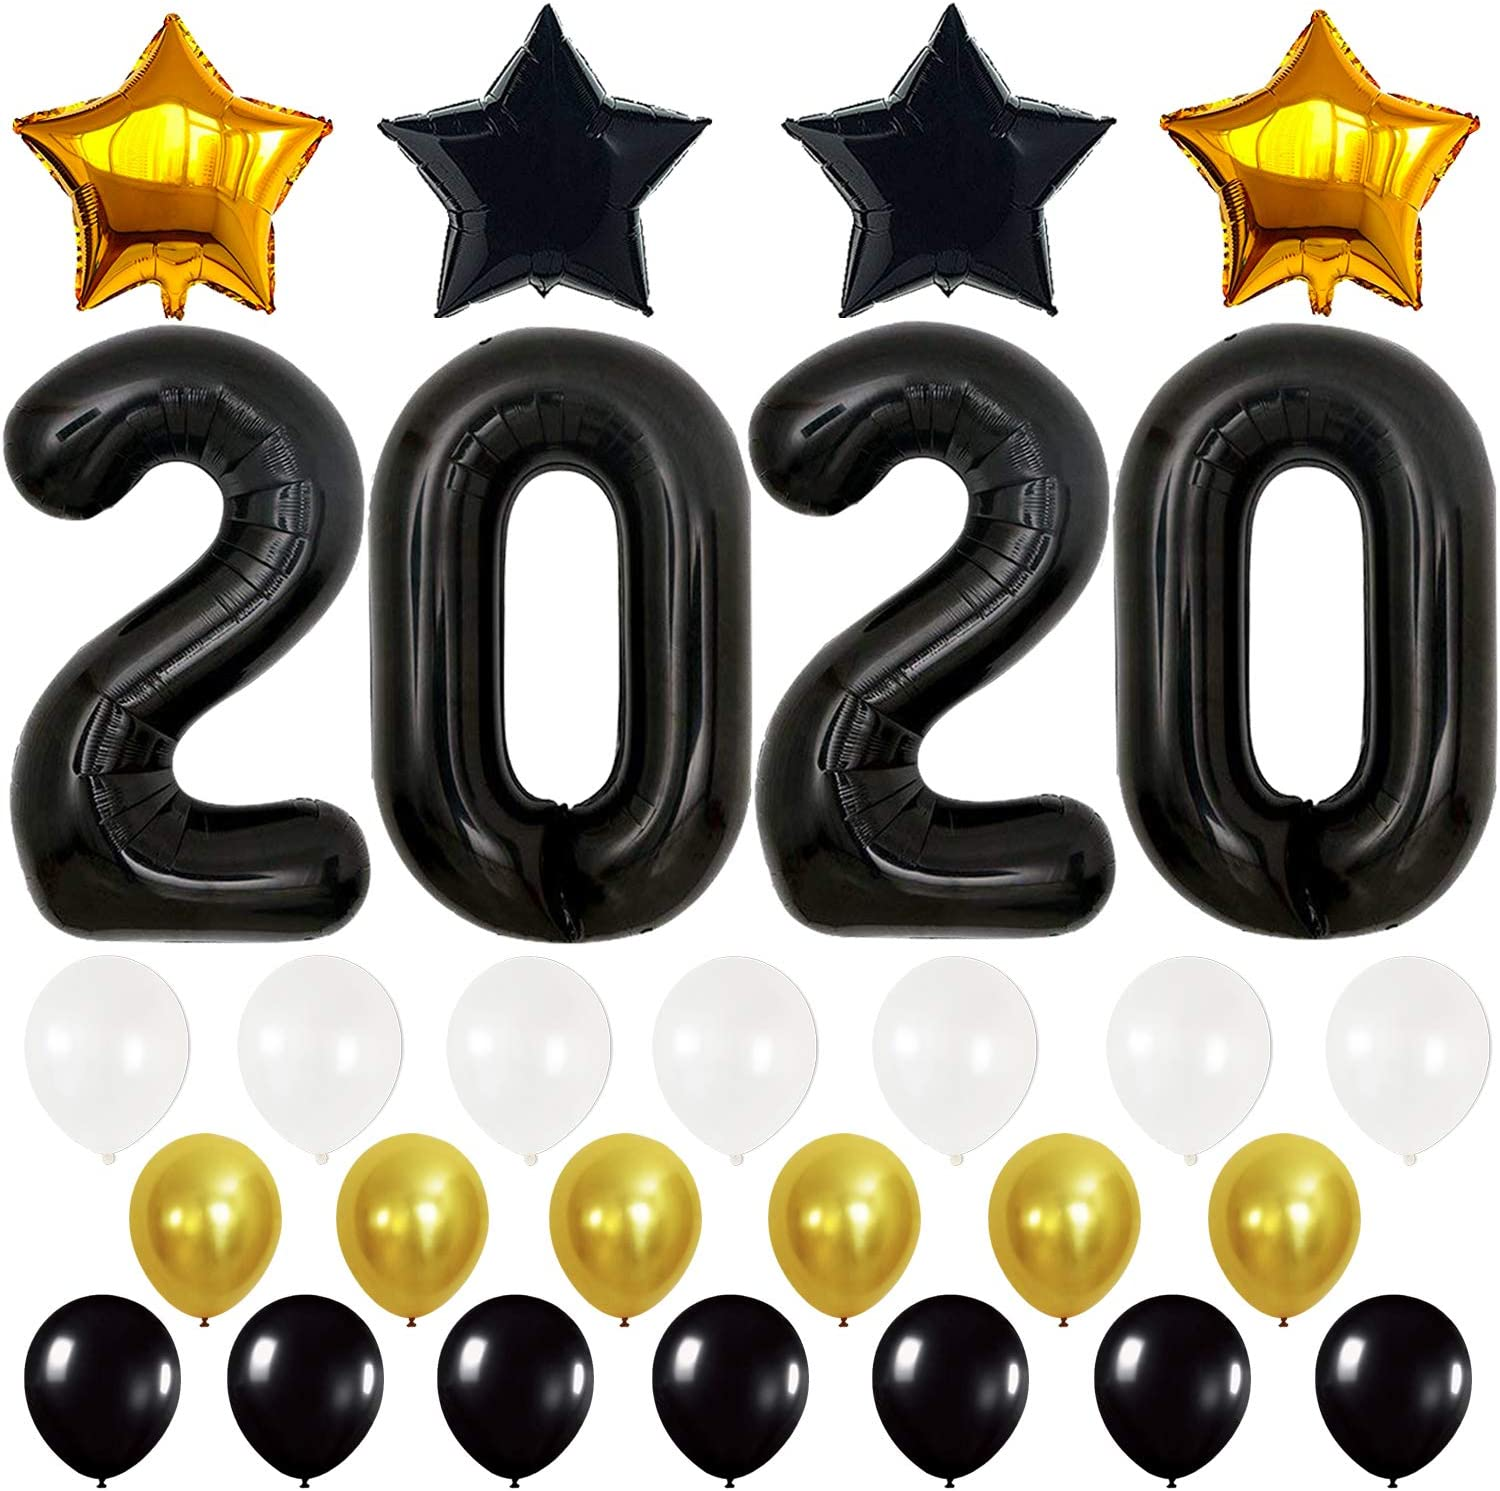 New Years Party Decorations New Years Eve Party Supplies 2019 Large Graduations Party Supplies 2019 2019 Balloons Black and Silver Ballon Kit Silver for New-Year Graduation Decorations